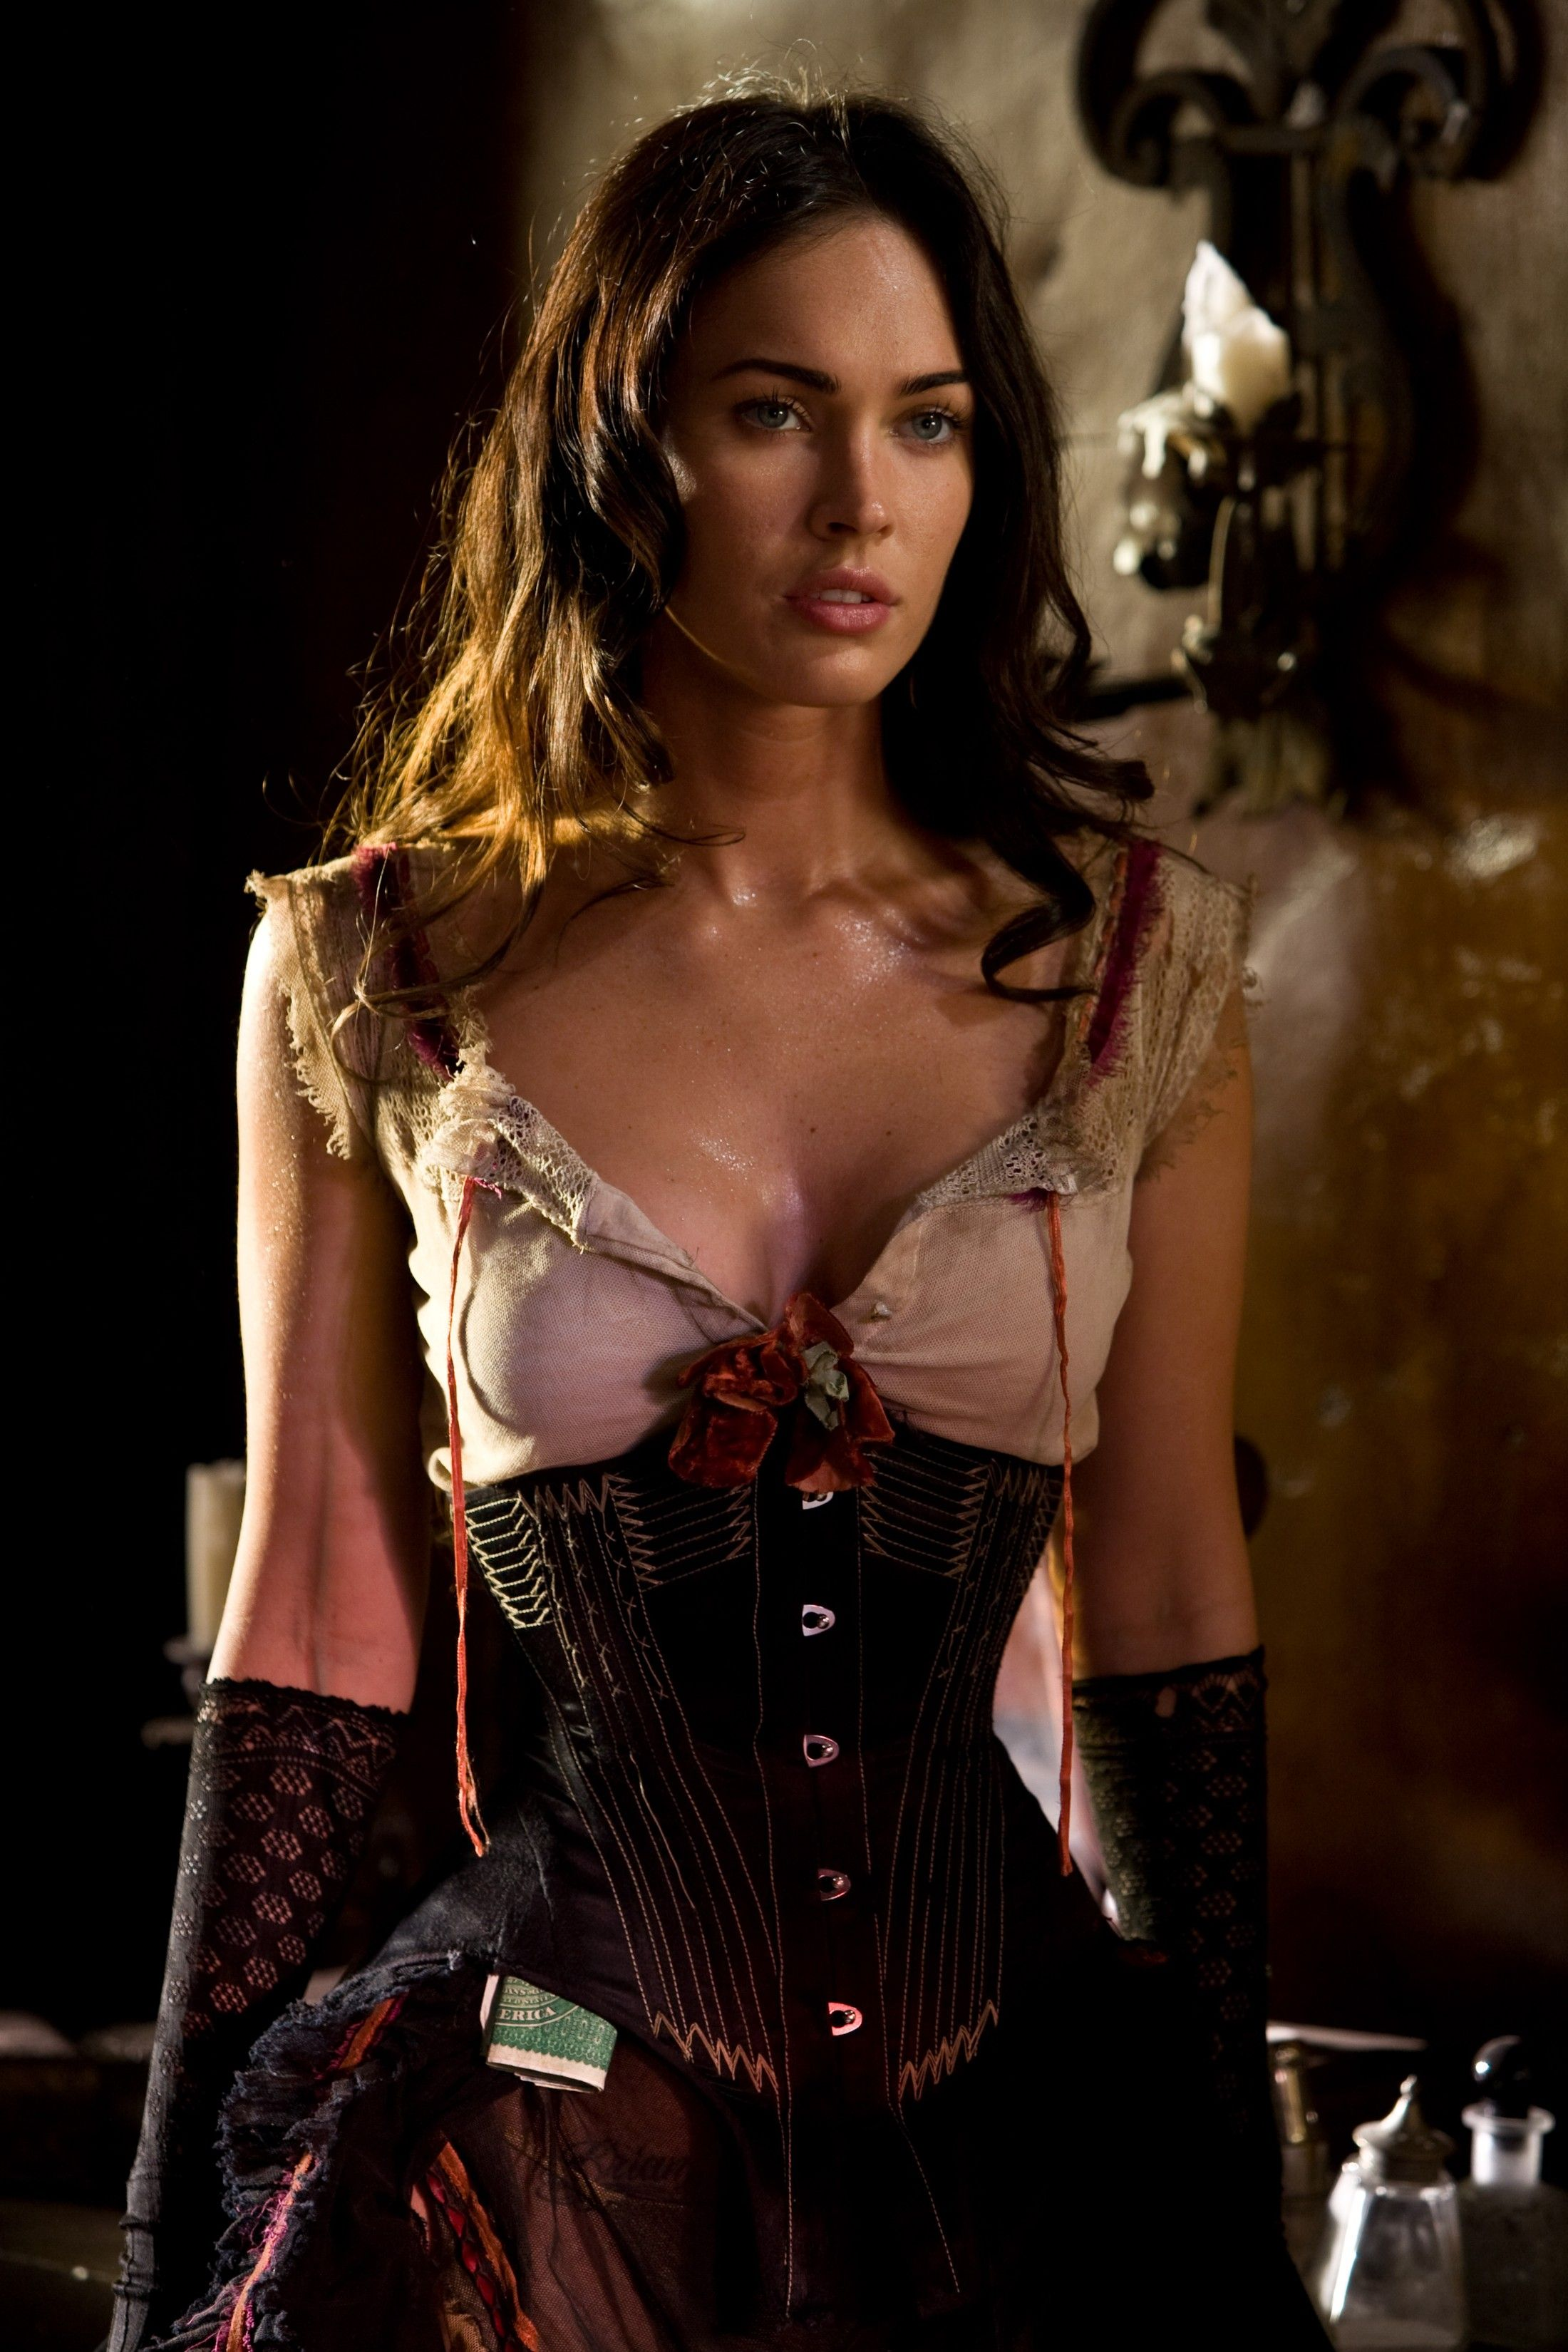 megan fox - jonah hex. cant help it i love the old time feel for